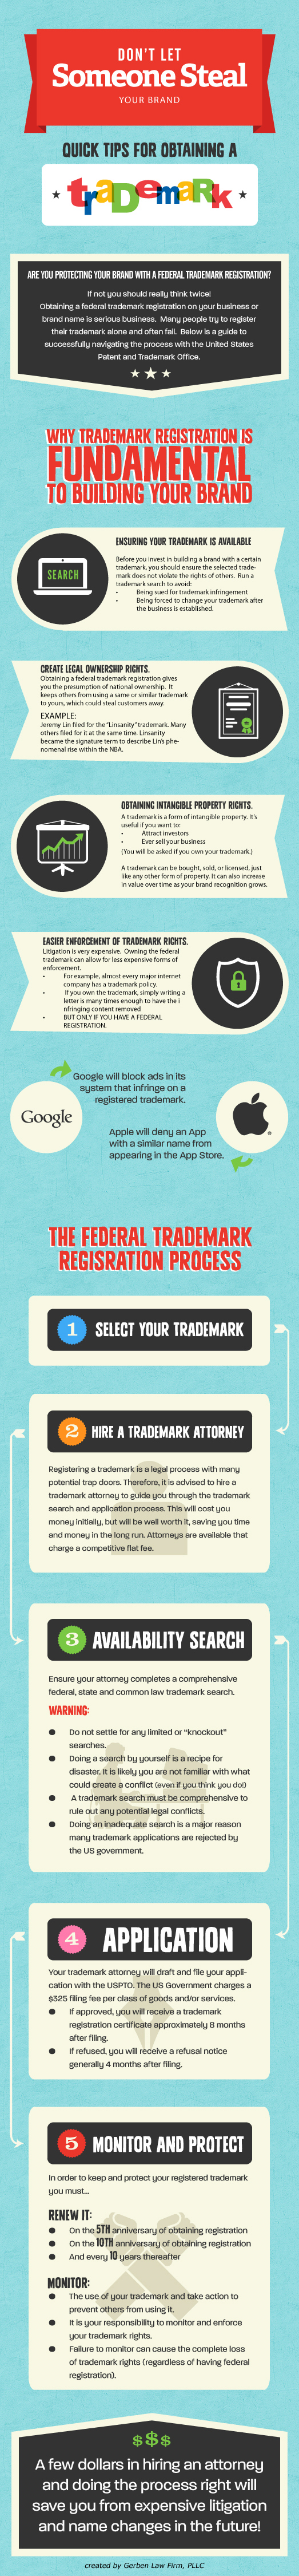 Quick Tips for Obtaining a Trademark